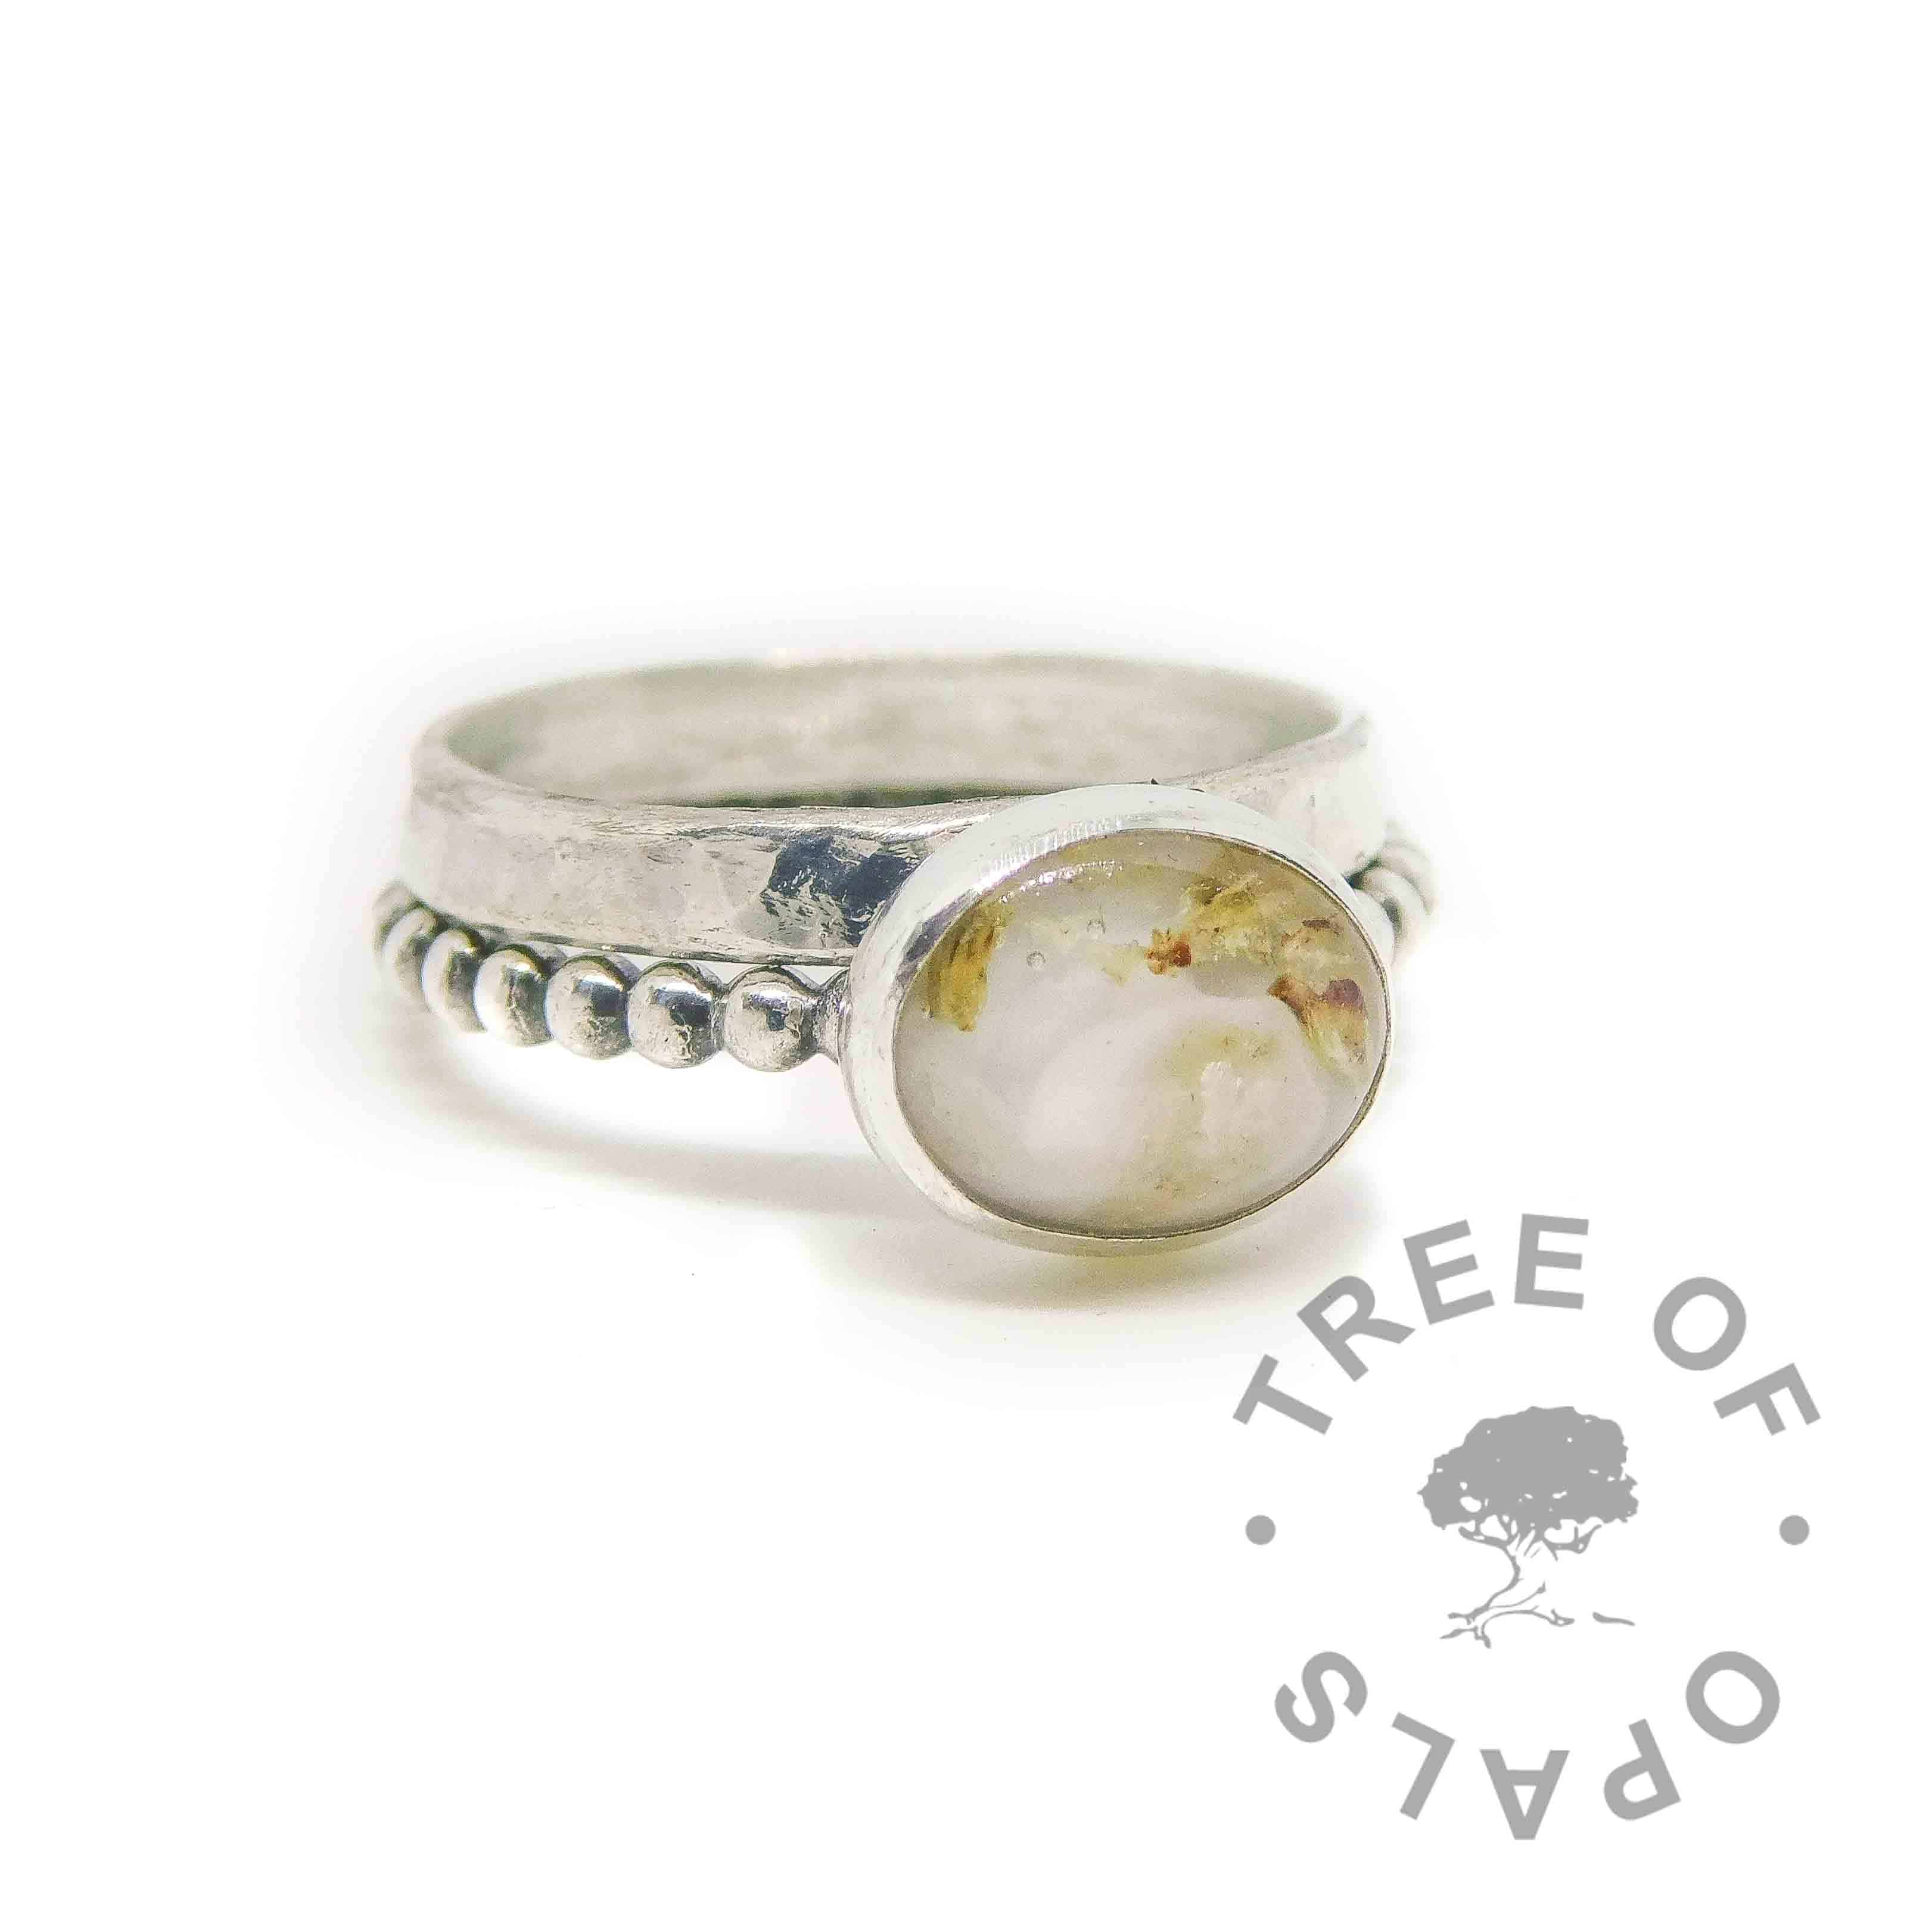 umbilical cord ring moonstone June birthstone on bubble wire band with wide band textured stacking ring